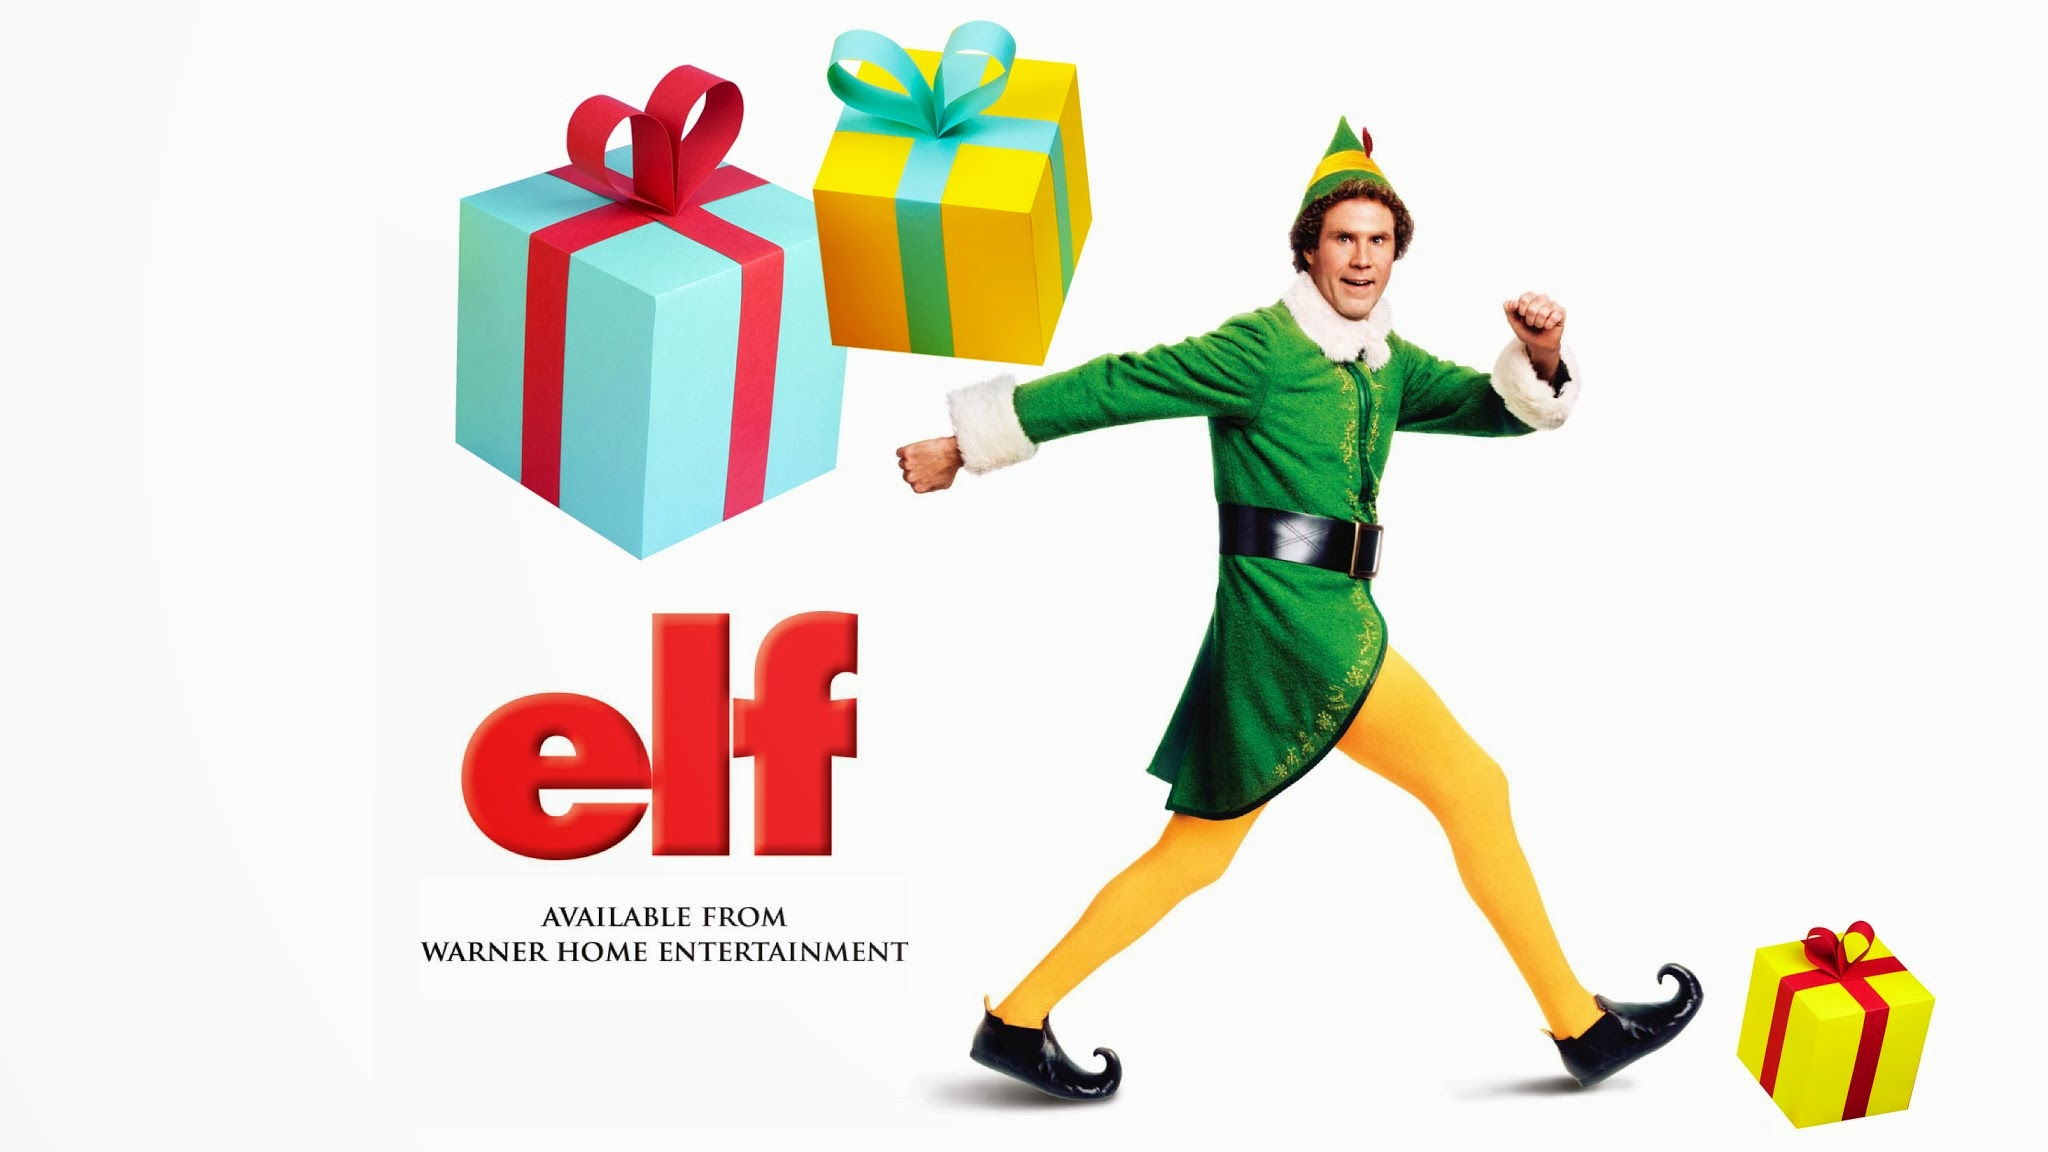 ELF comedy christmas poster d wallpaper background 2048x1152